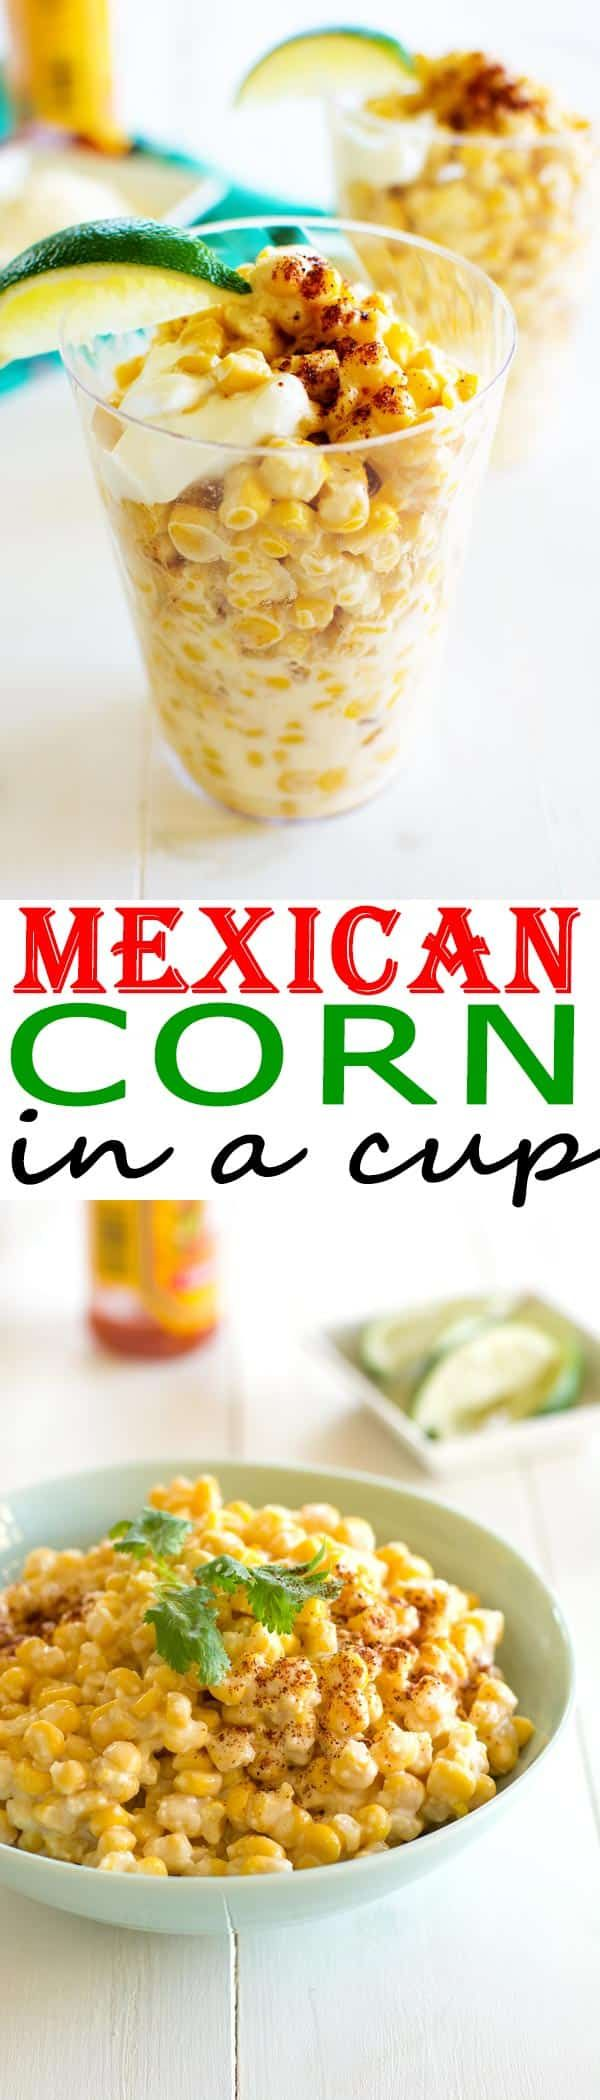 Mexican Corn in a Cup recipe (Elotes/Esquites). Now you can have this street food at home! | mayonnaise, butter, chili, lime